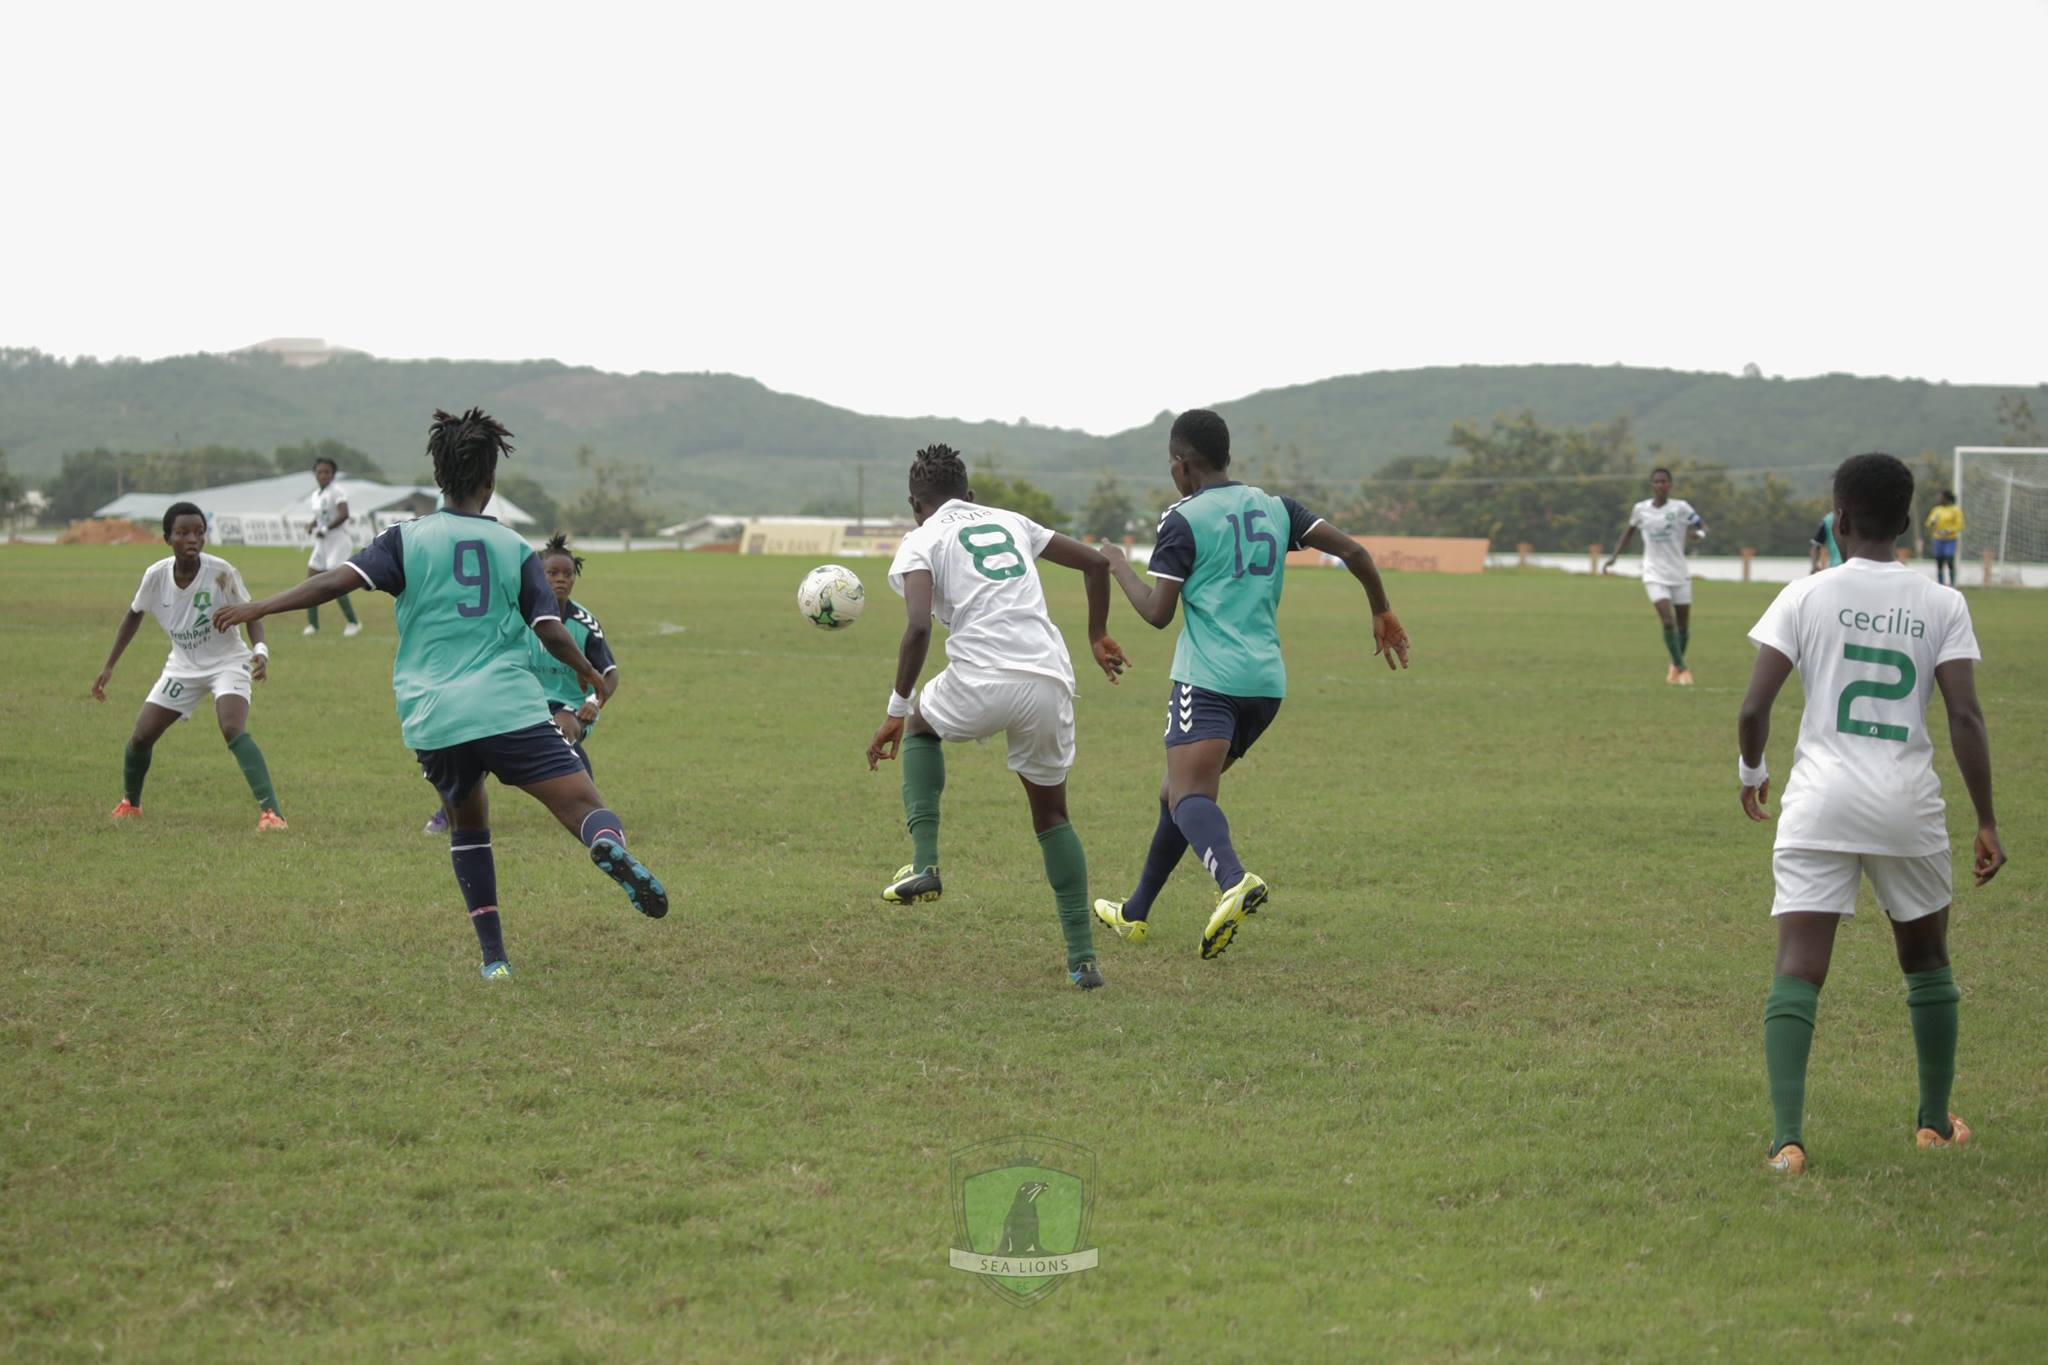 Sealion Vrs Lady Strikers